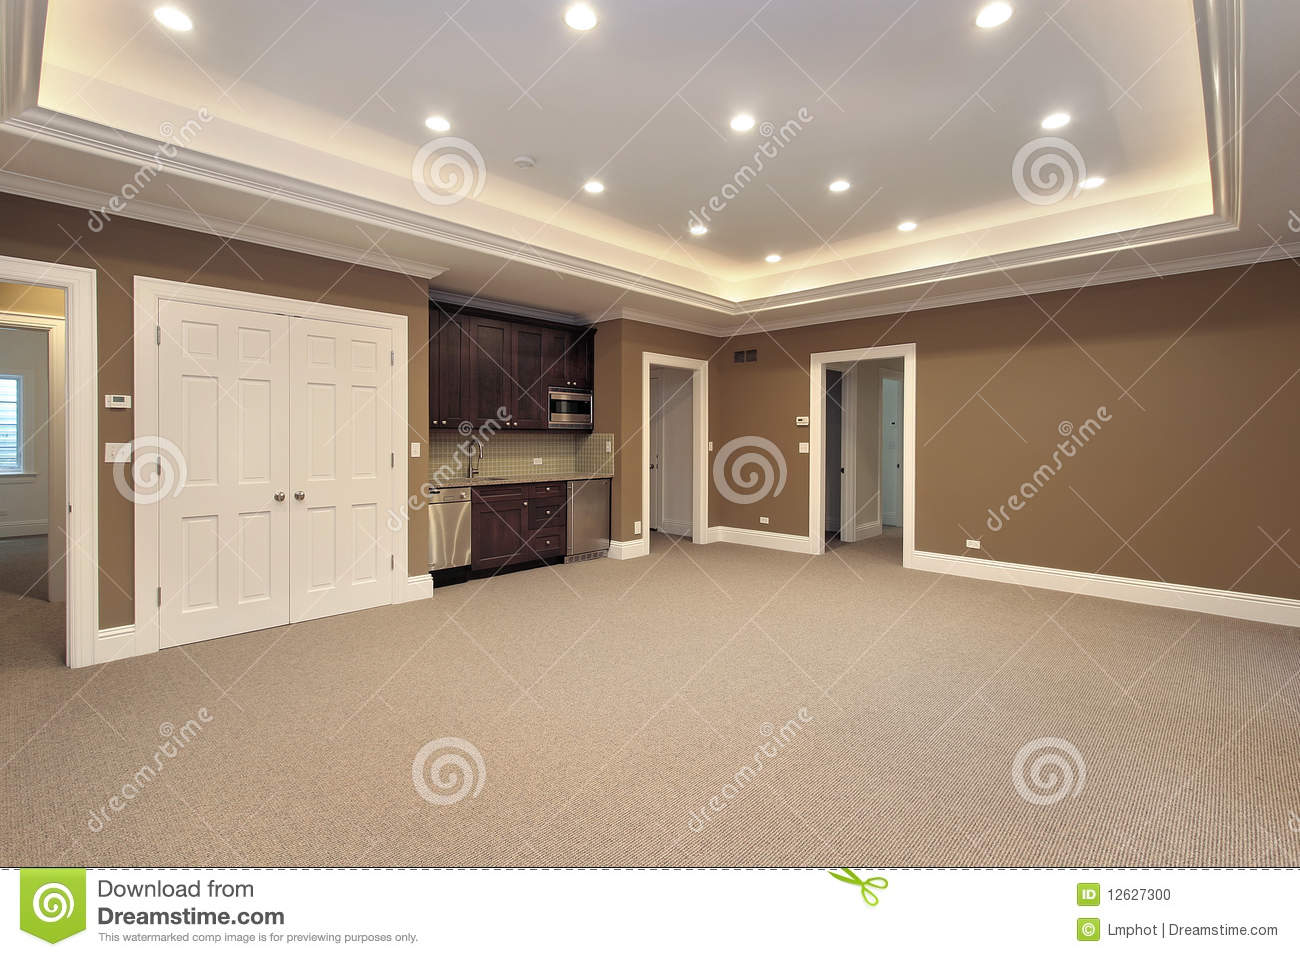 Sous sol dans la maison de construction neuve photo stock image 12627300 for Bar sous sol maison